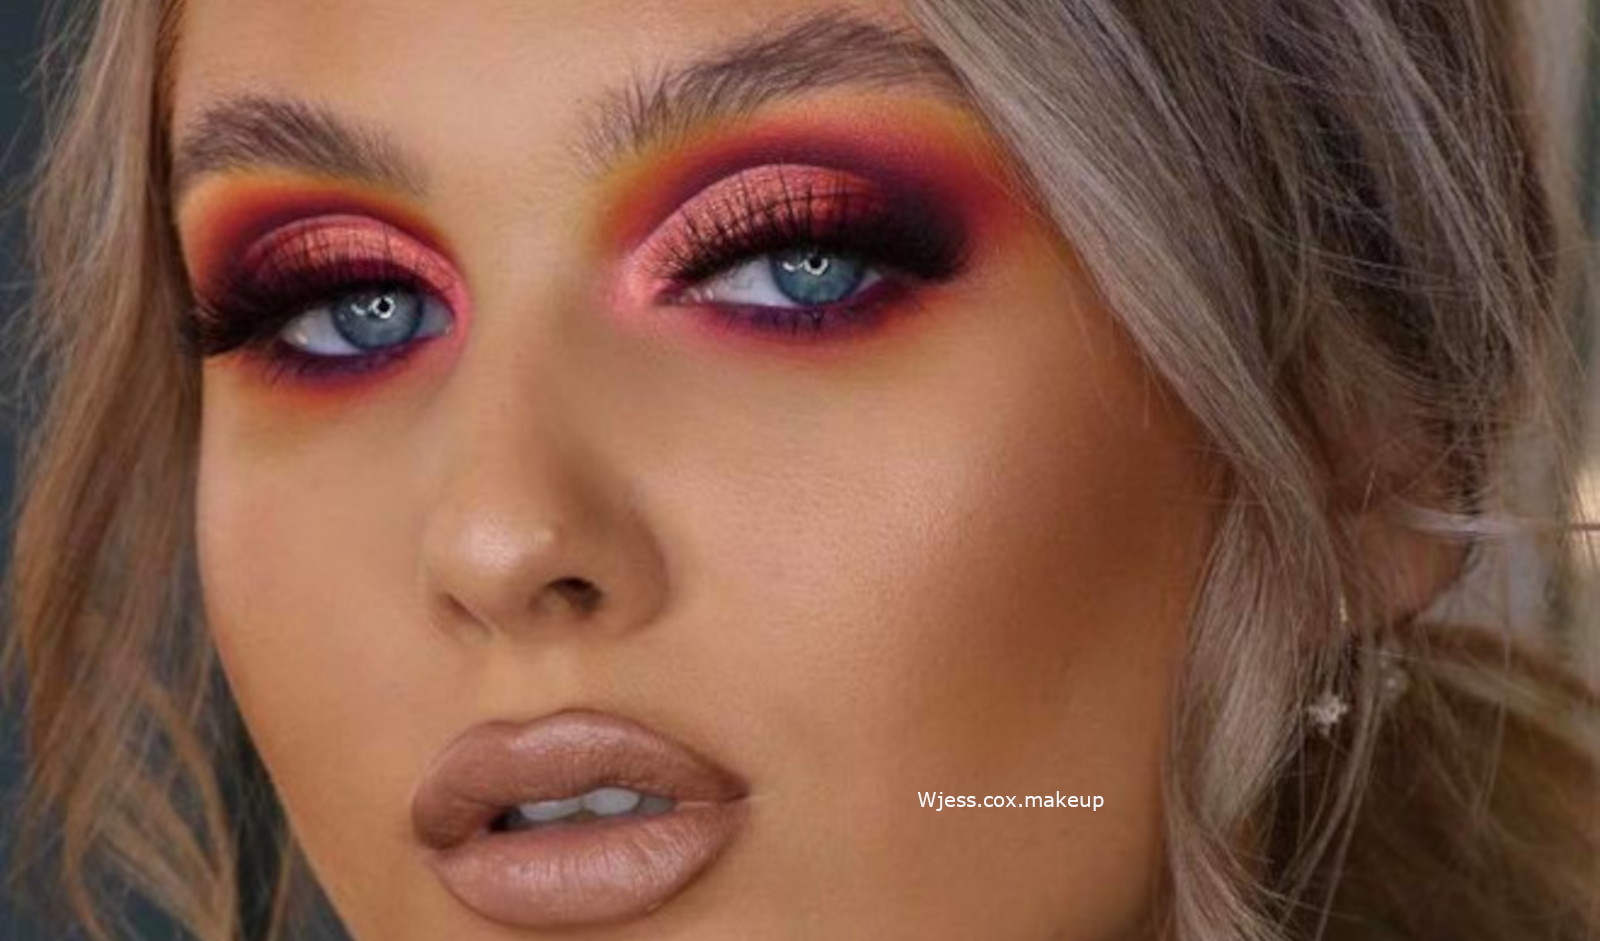 Sunset Eyeshadow Makeup Looks For Summer